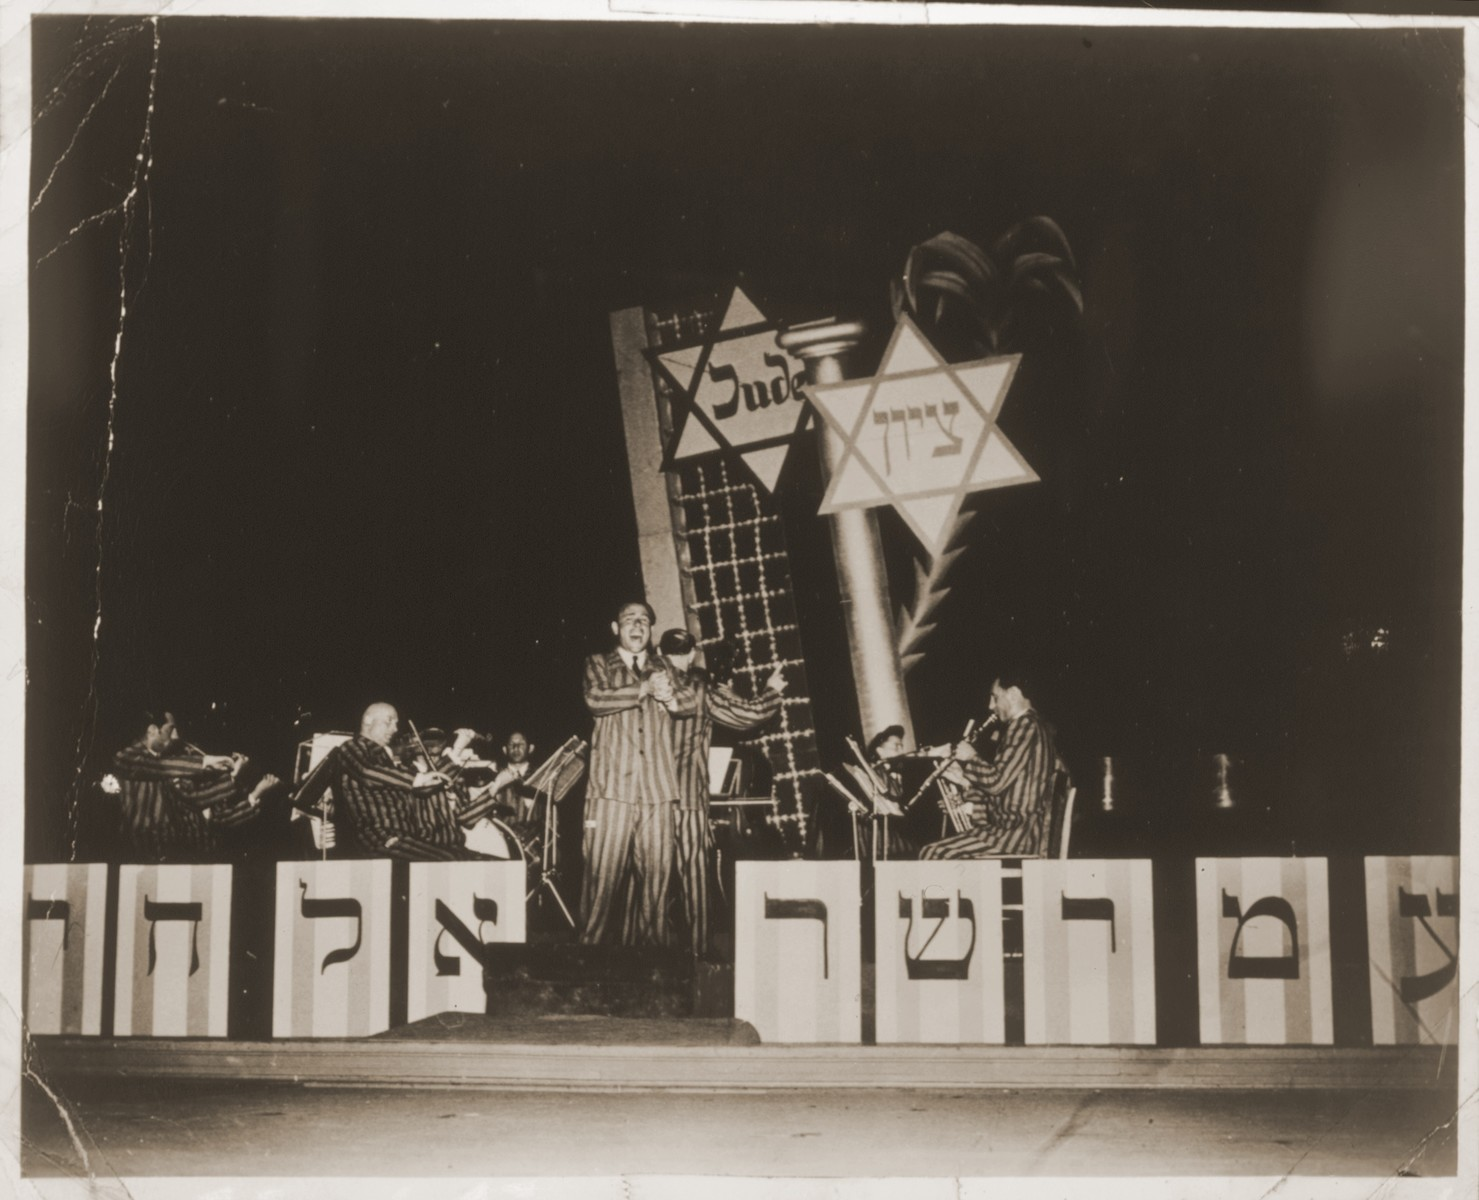 Members of the Jewish Ex-Concentration Camp orchestra perform on stage in Nuremberg, Germany.   Among the musicians pictured are singer George Richter, violinist Max Beker (left) and pianist Fanny Durmashkin-Beker.  See photograph 48234 for alternate caption.